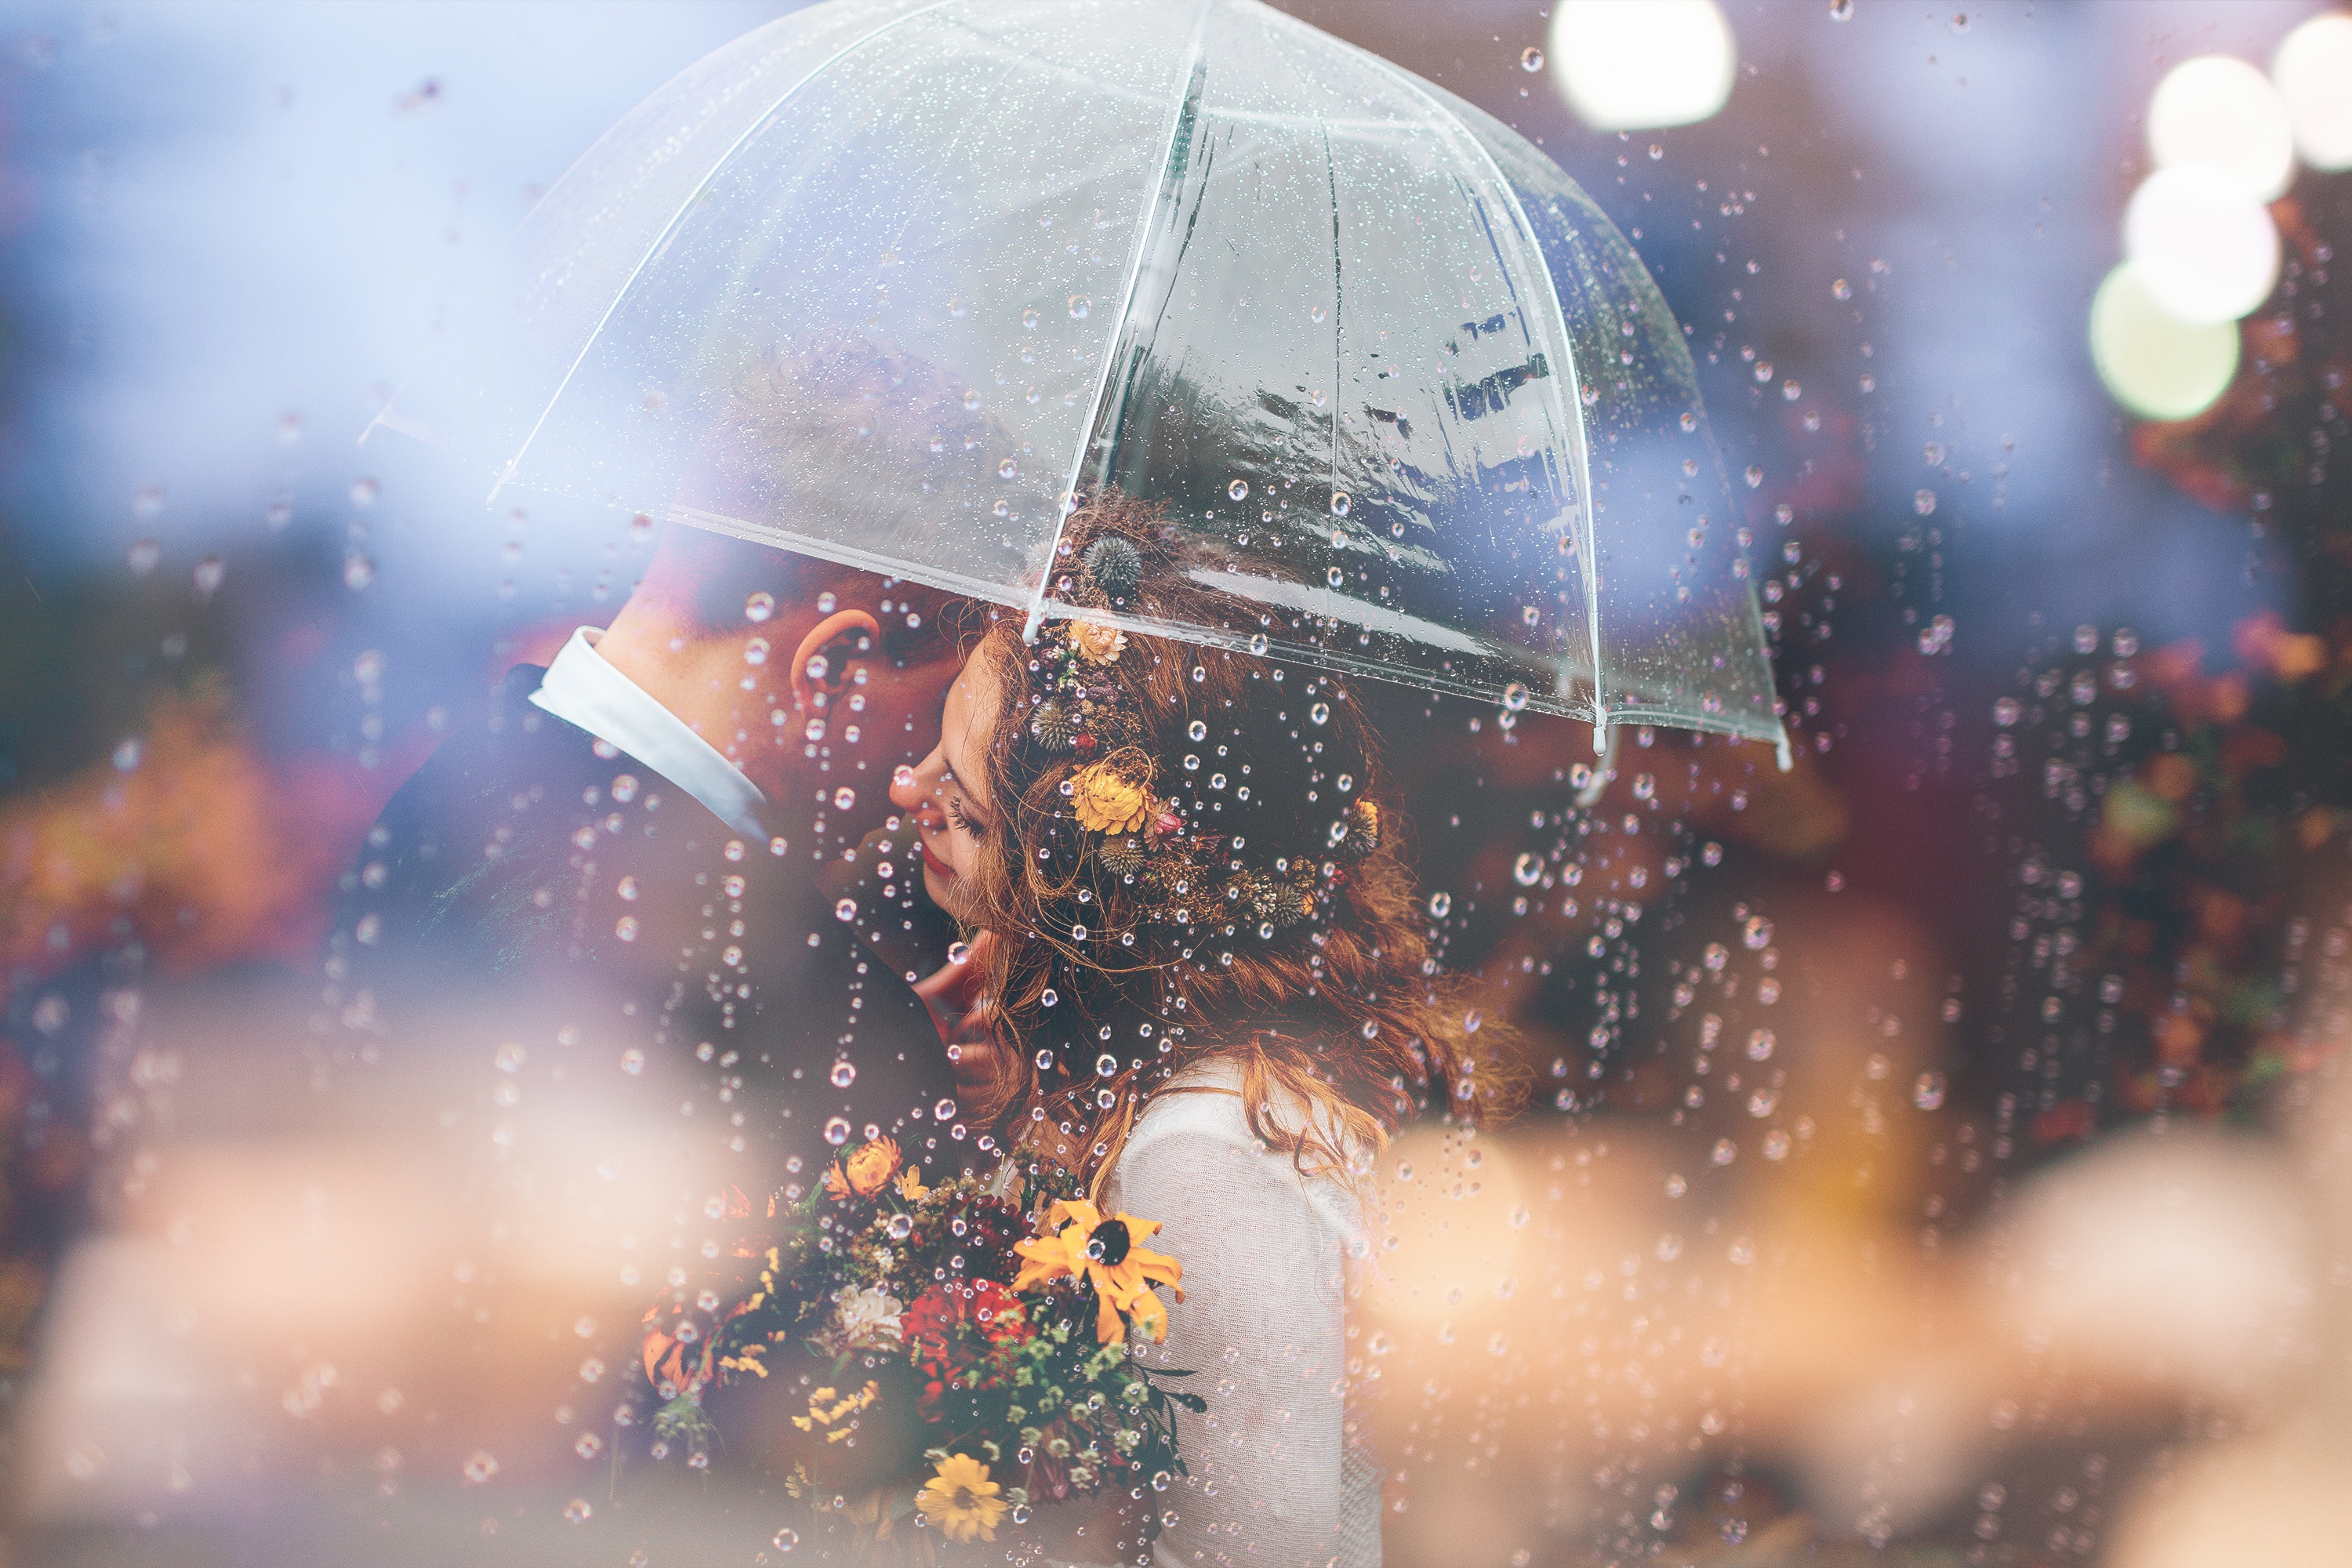 Lovely Cartoon Couple Android Wallpapers 960x800 Hd: Married Couple Romantic Umbrella Raining Weeding, HD Love